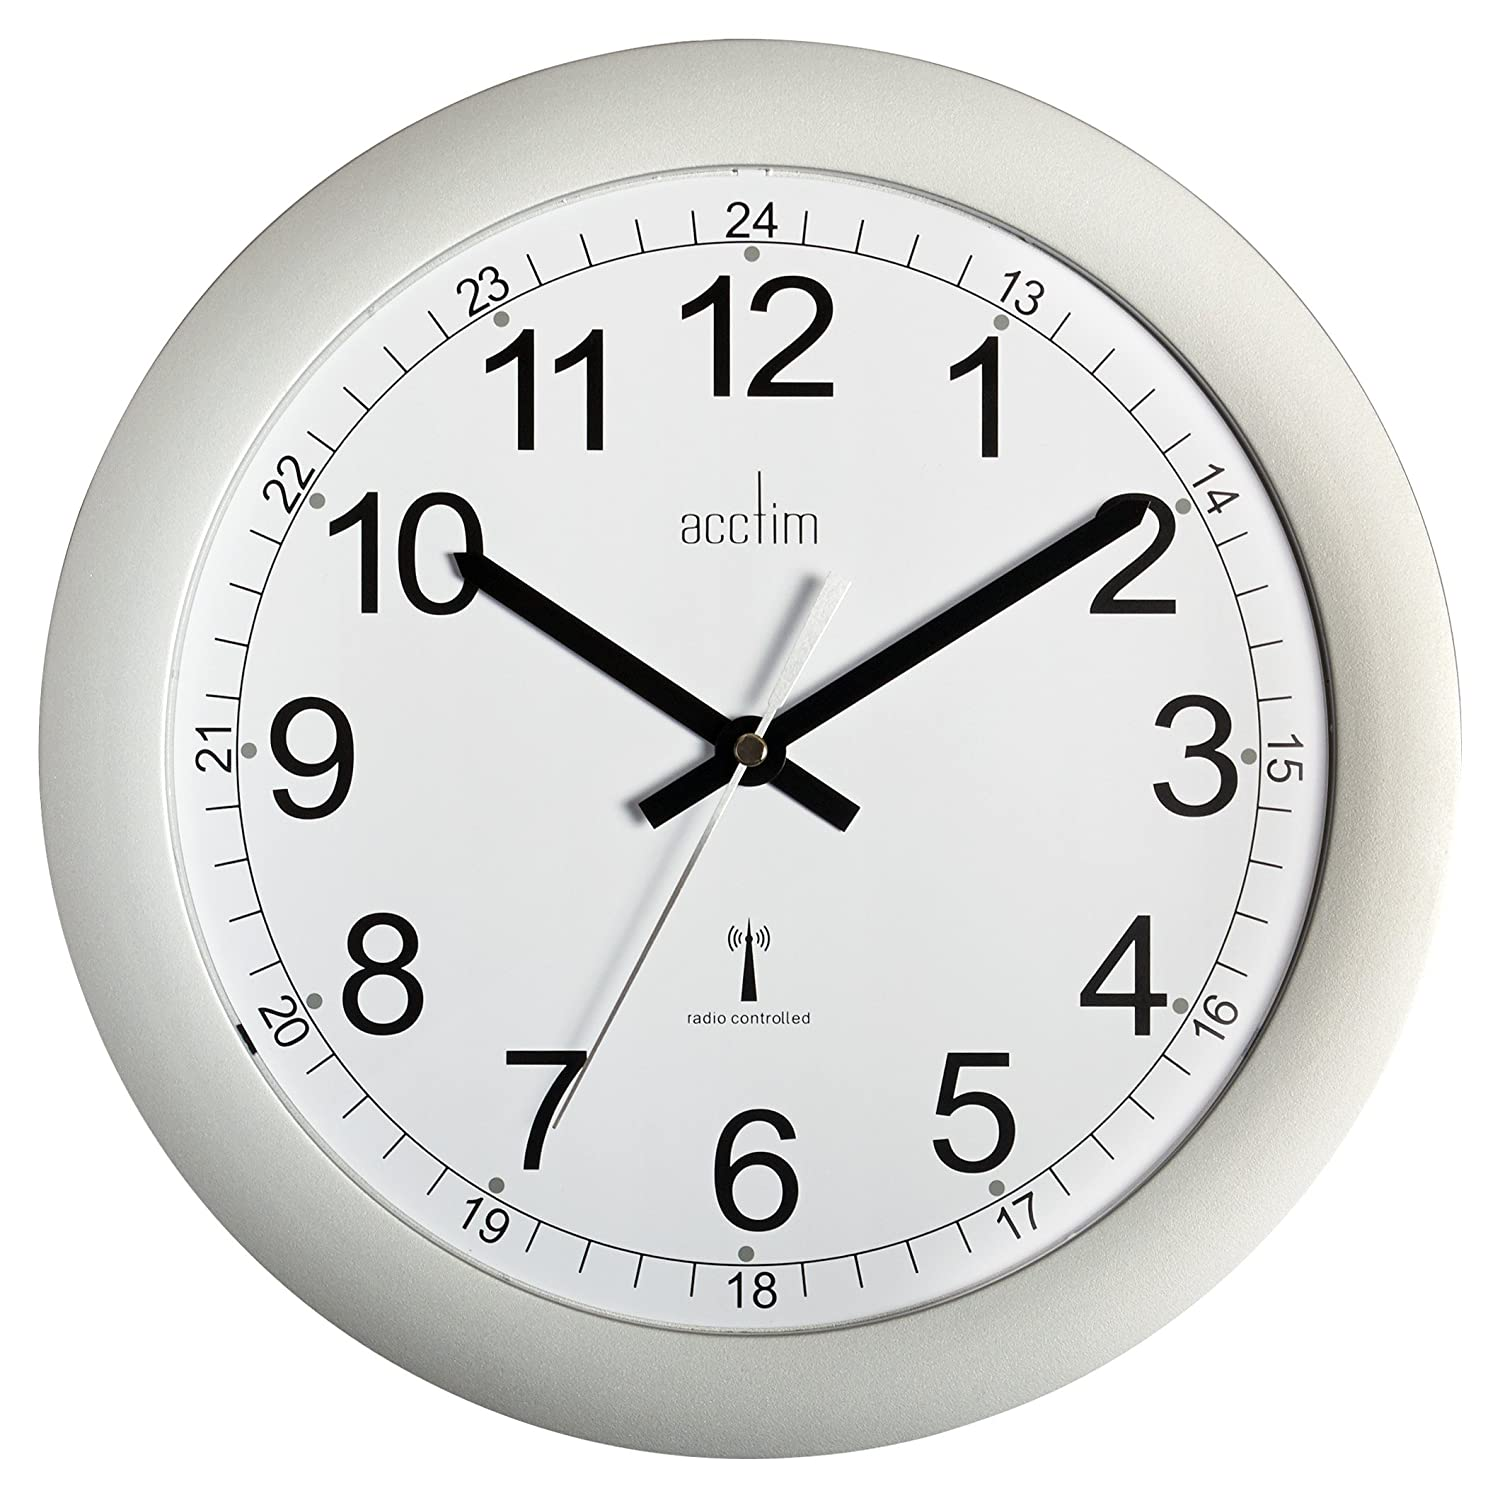 Acctim 74417 formia radio controlled wall clock silver amazon acctim 74417 formia radio controlled wall clock silver amazon kitchen home amipublicfo Choice Image